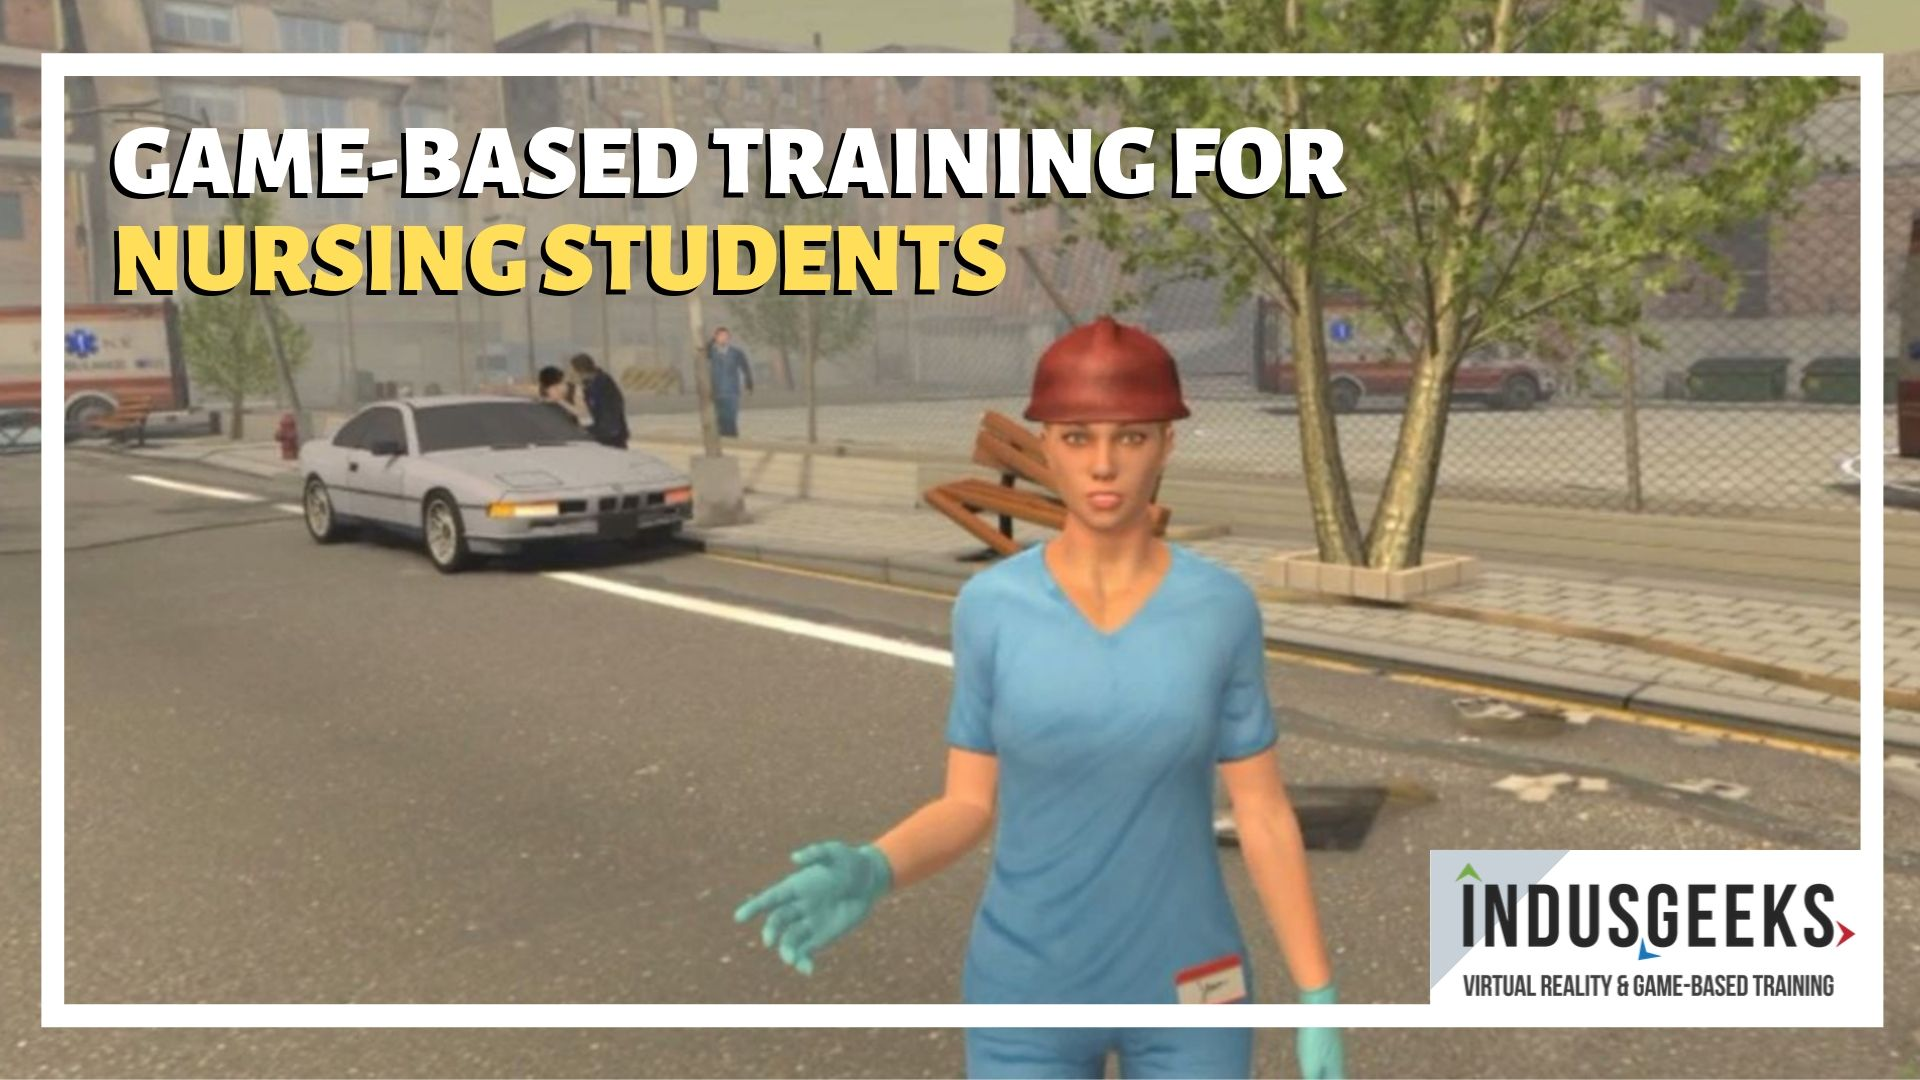 Game-based nursing training